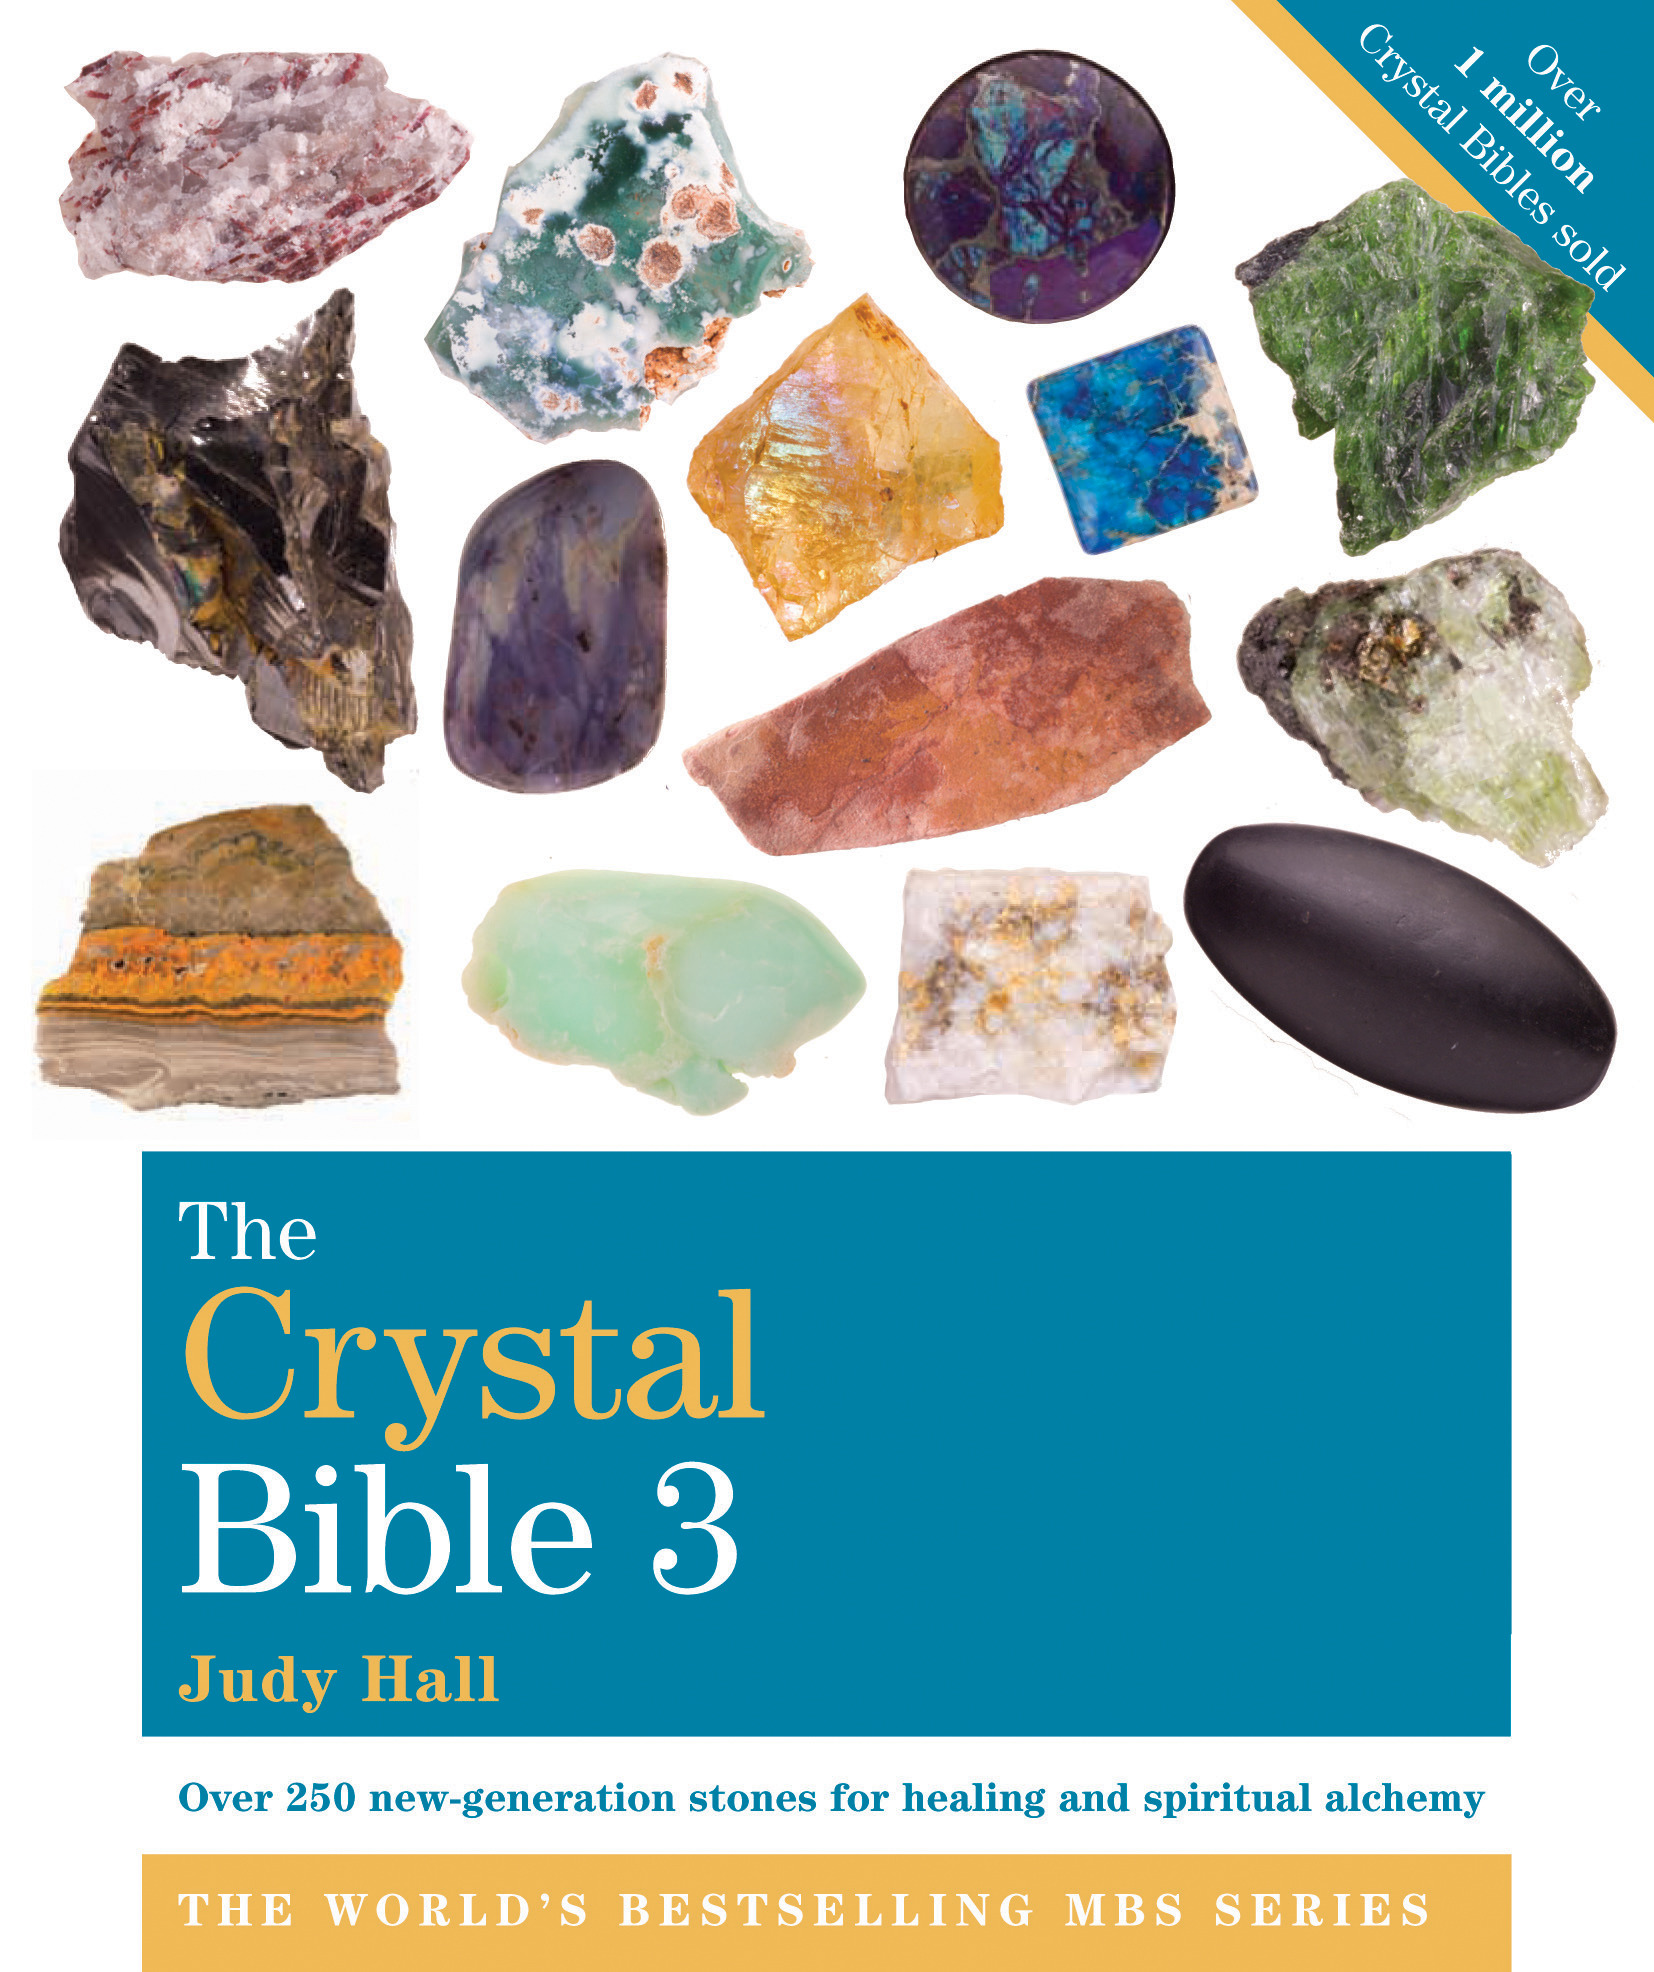 The Crystal Bible 3 | Faith & Spirituality